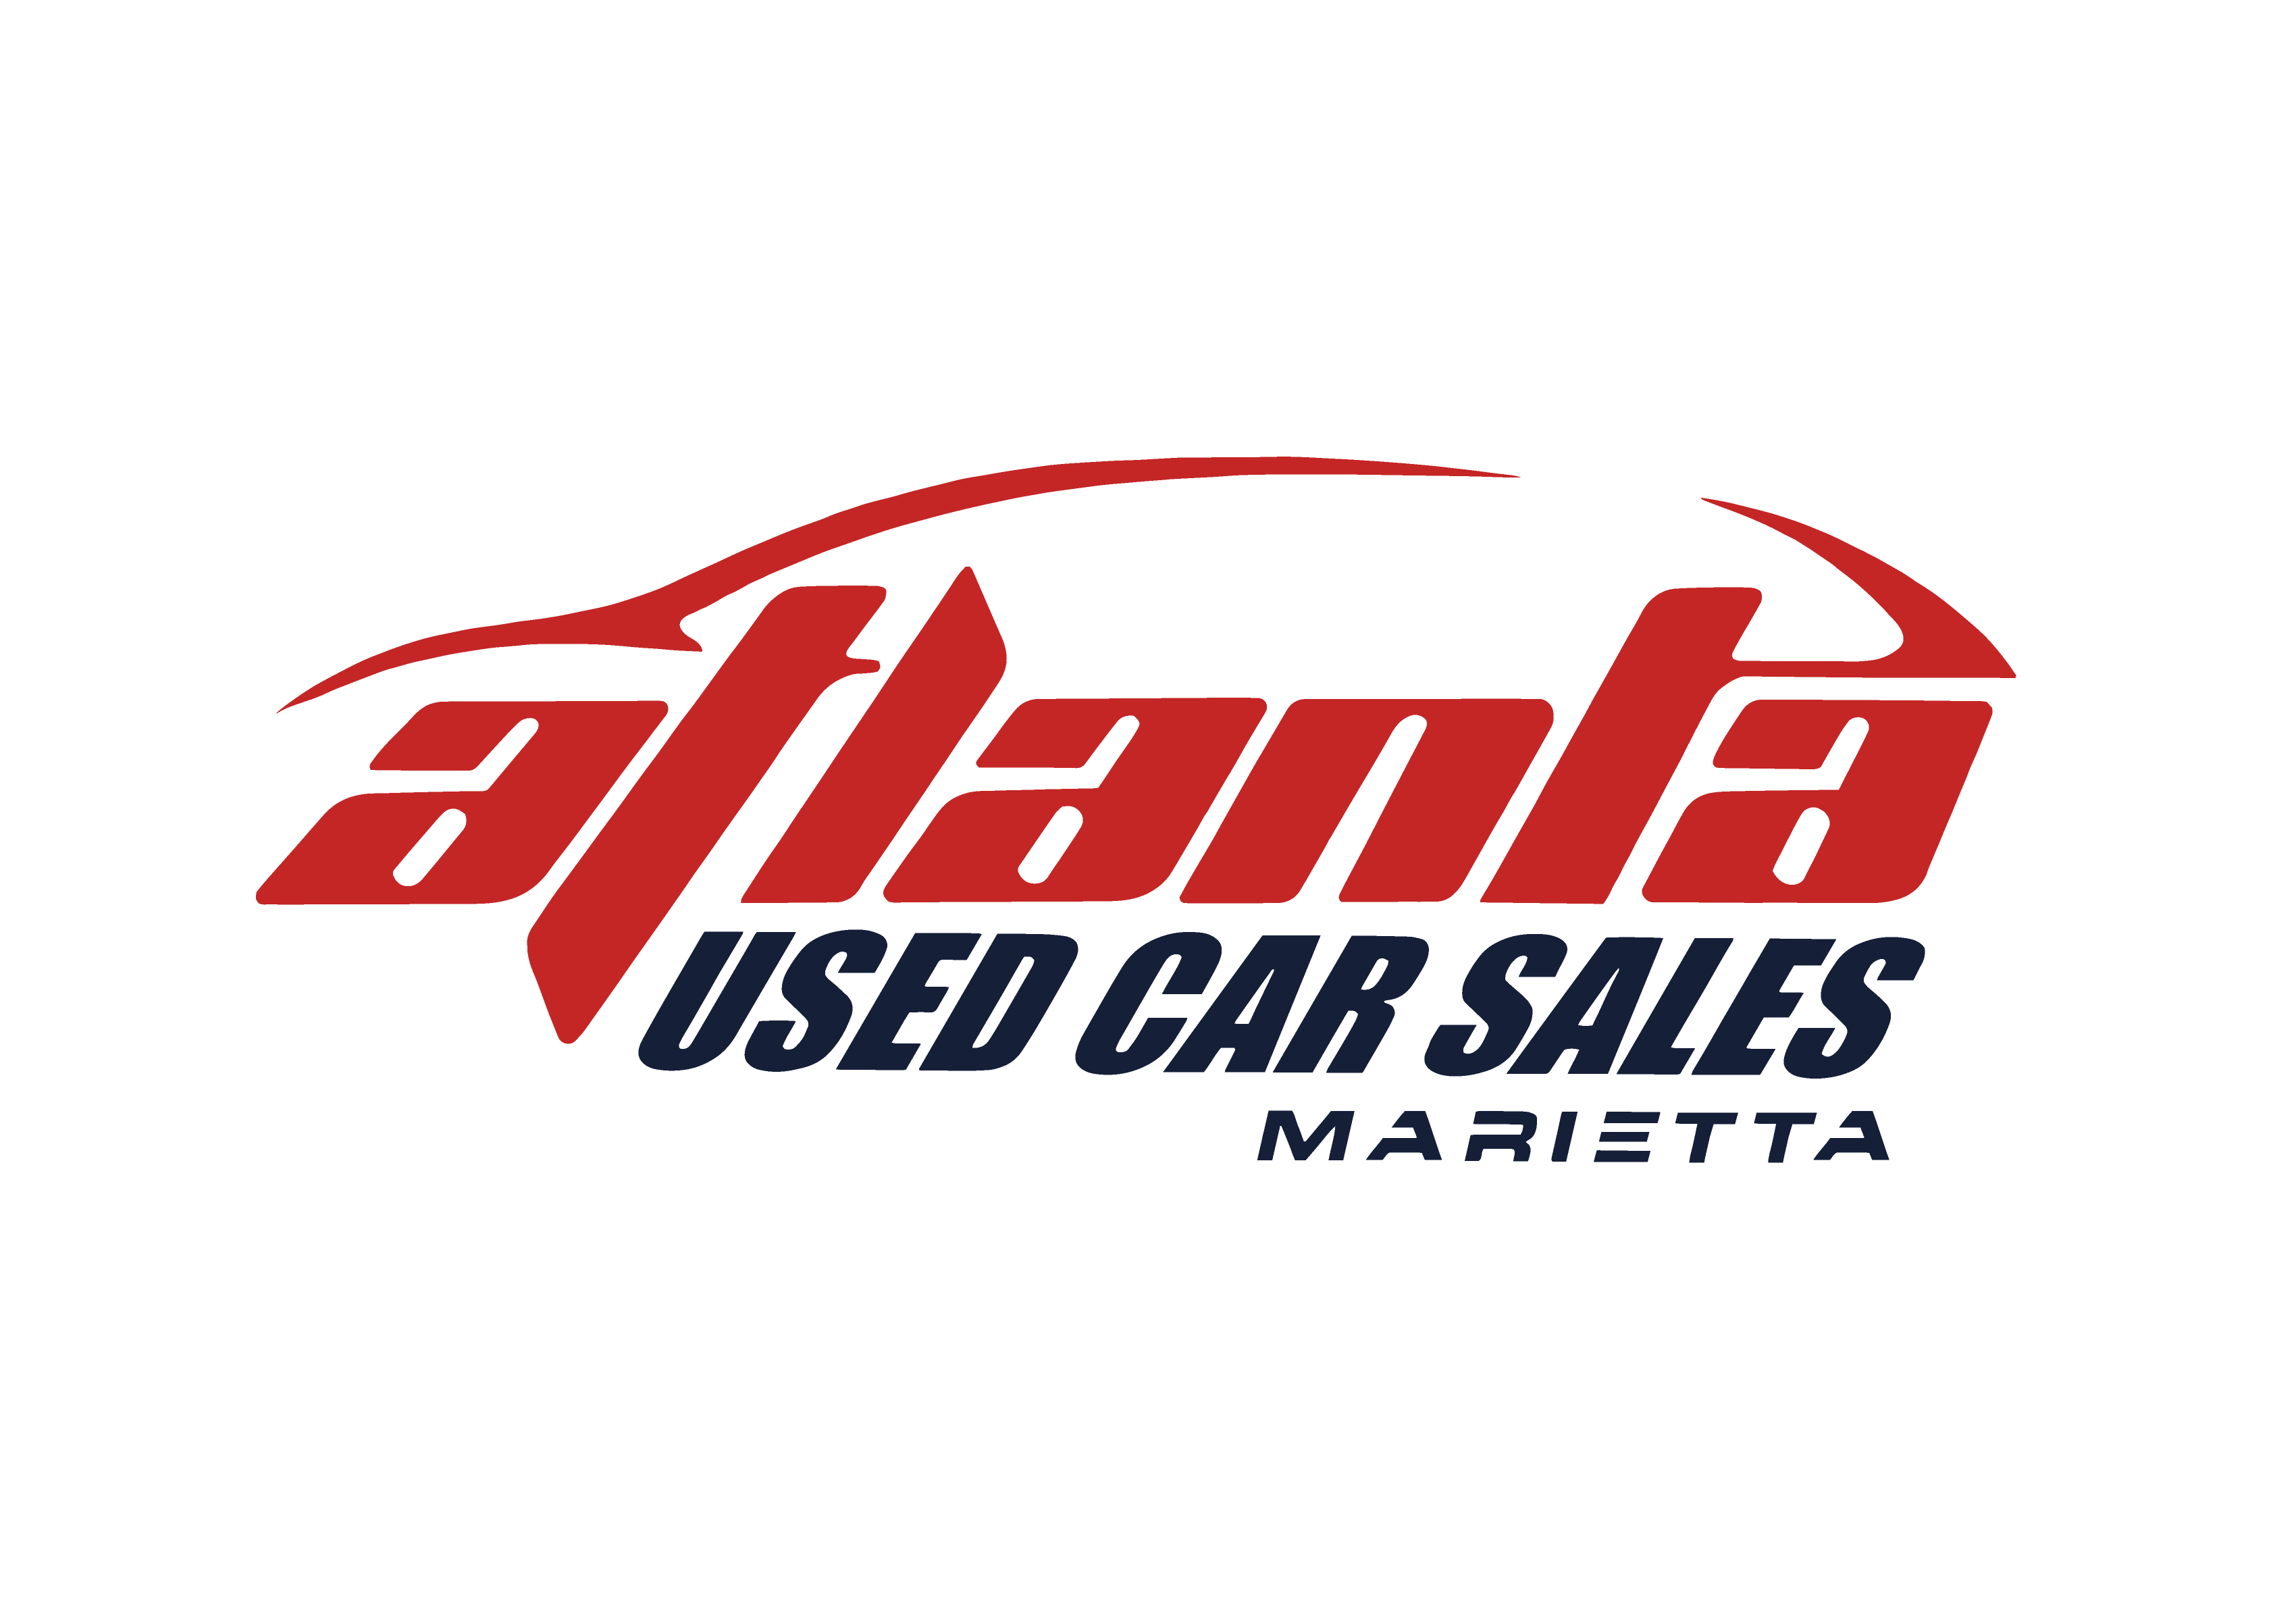 Atlanta Used Car Sales Marietta Logo